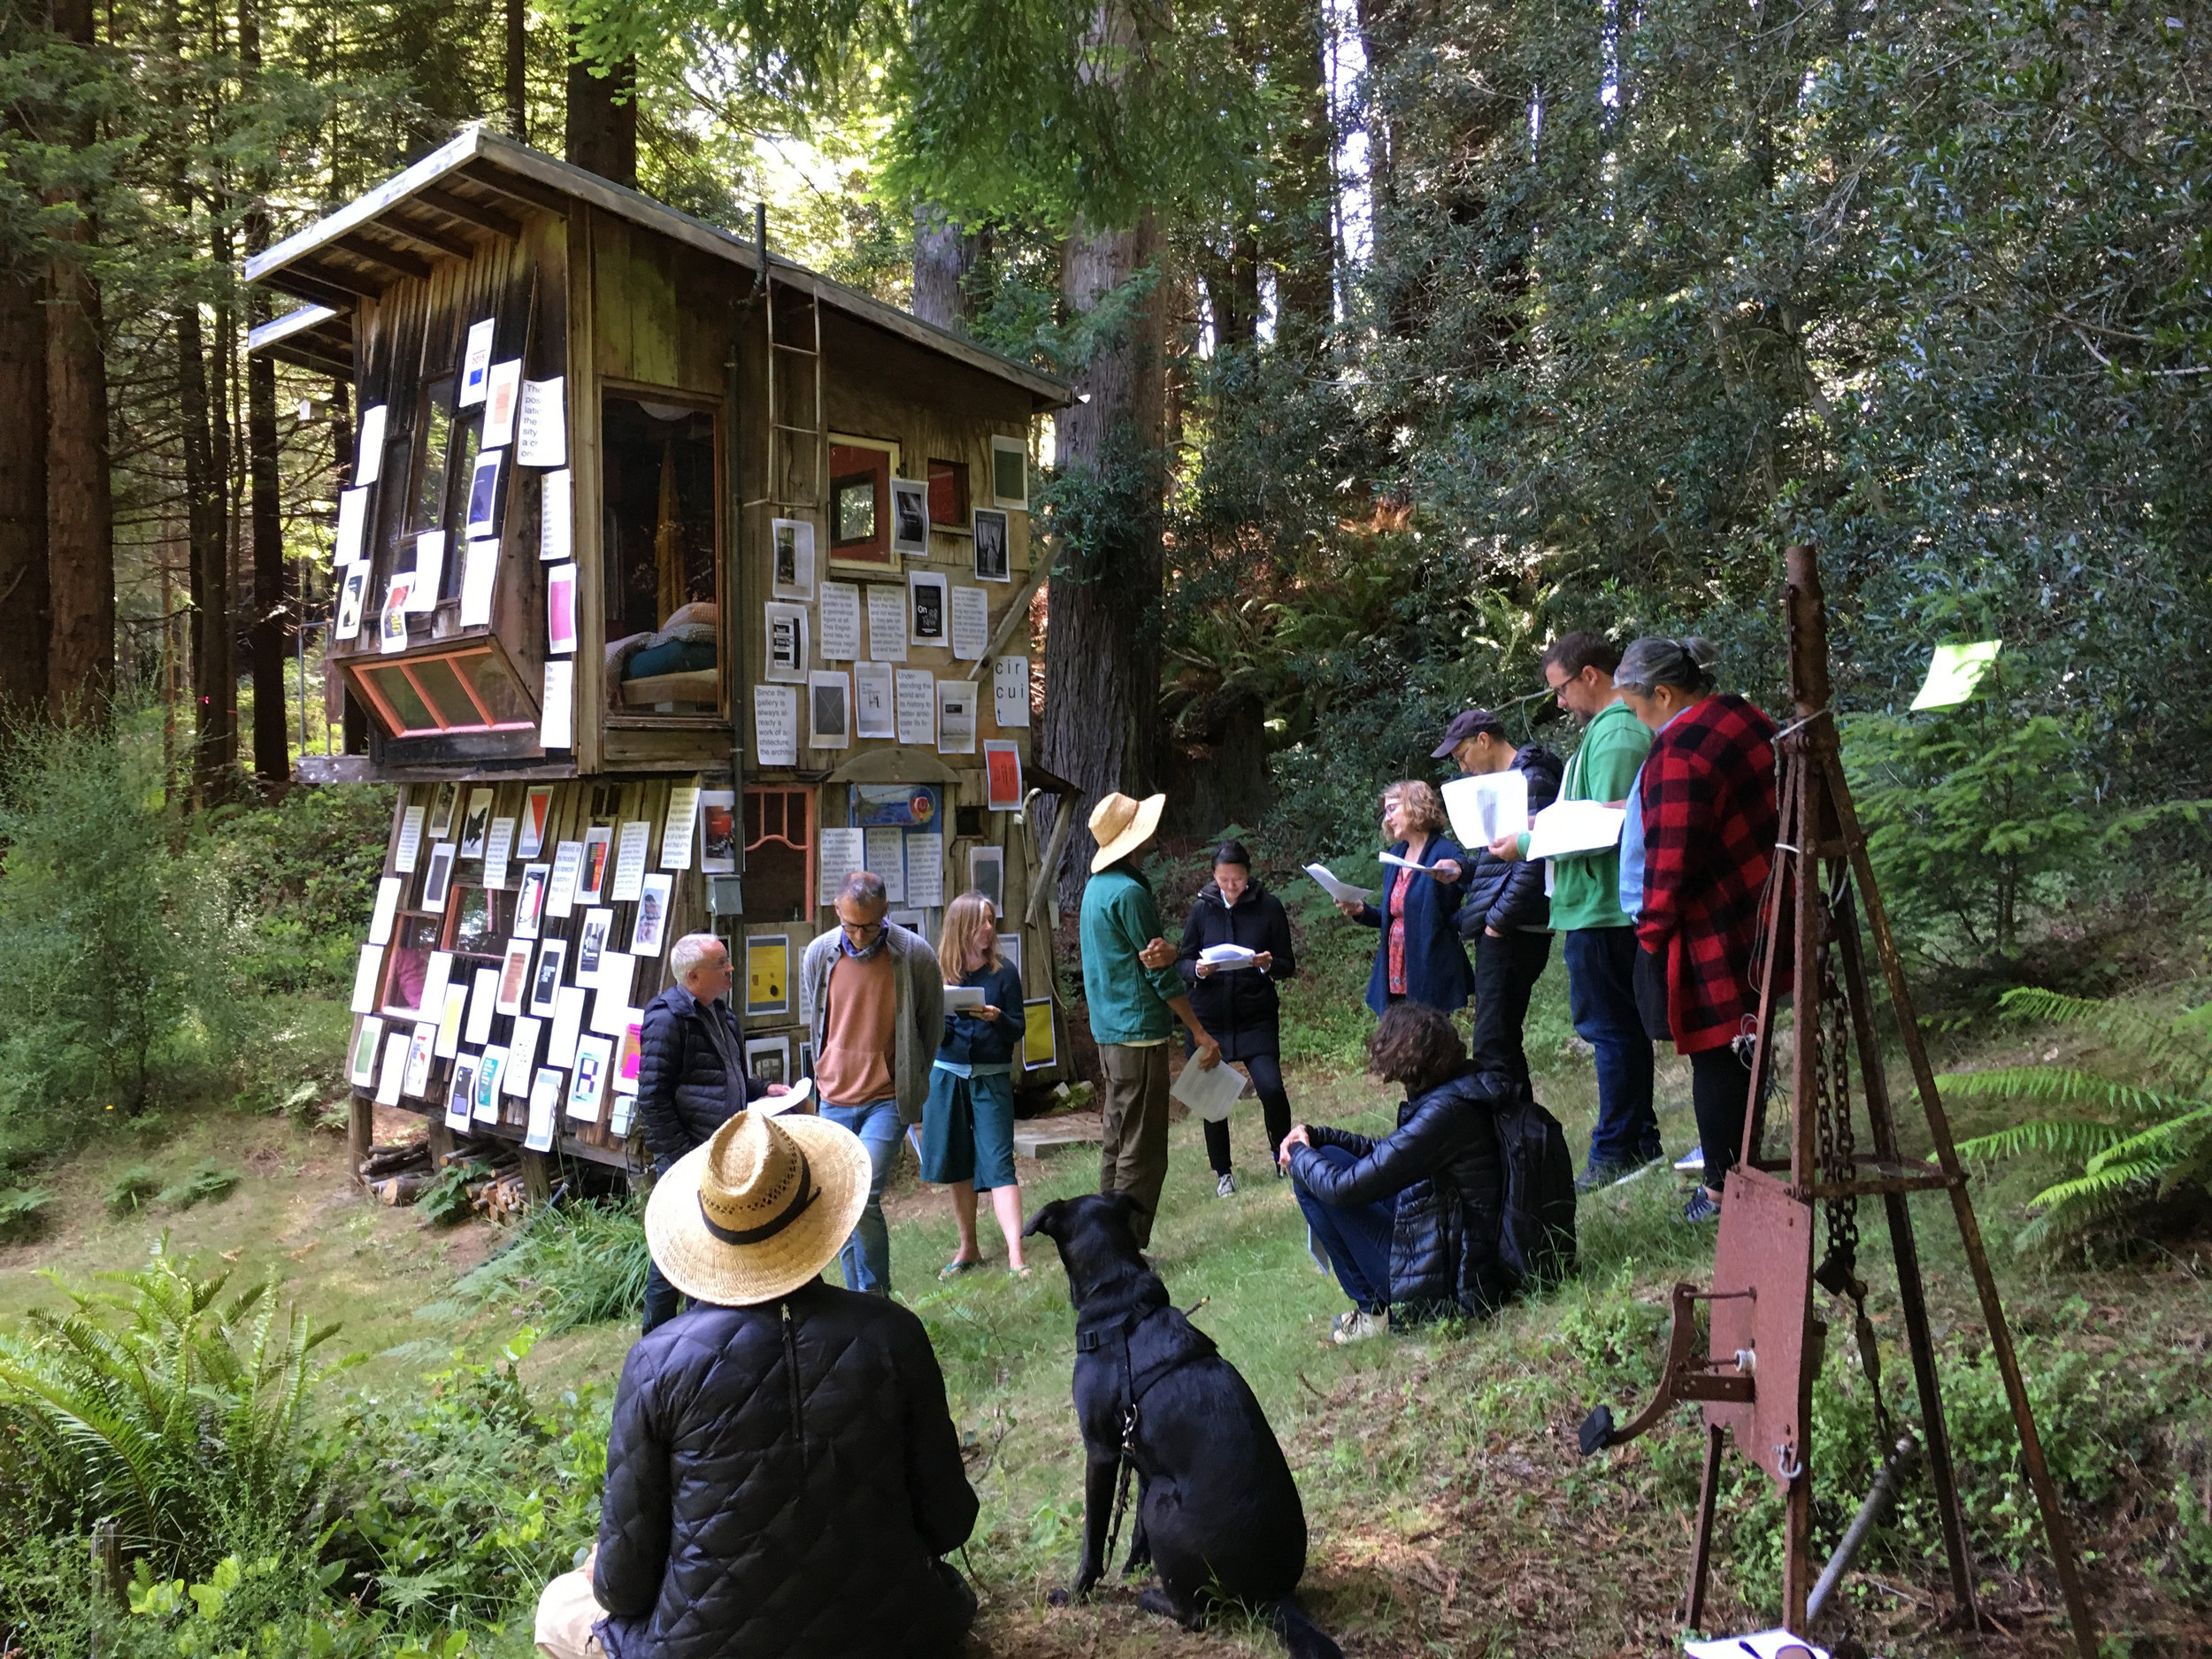 Companion Planting . Module: Institutions, led by Nate Padavick, Calvin, Rocchio, and James Voorhies. Audition-reading by group of script made with quotes pulled from pictured publications. Posters of photographs of books and the quotes reflect modes of visionary challenges to institution practice. River Cabin, Salmon Creek Farm, June 9, 2018.